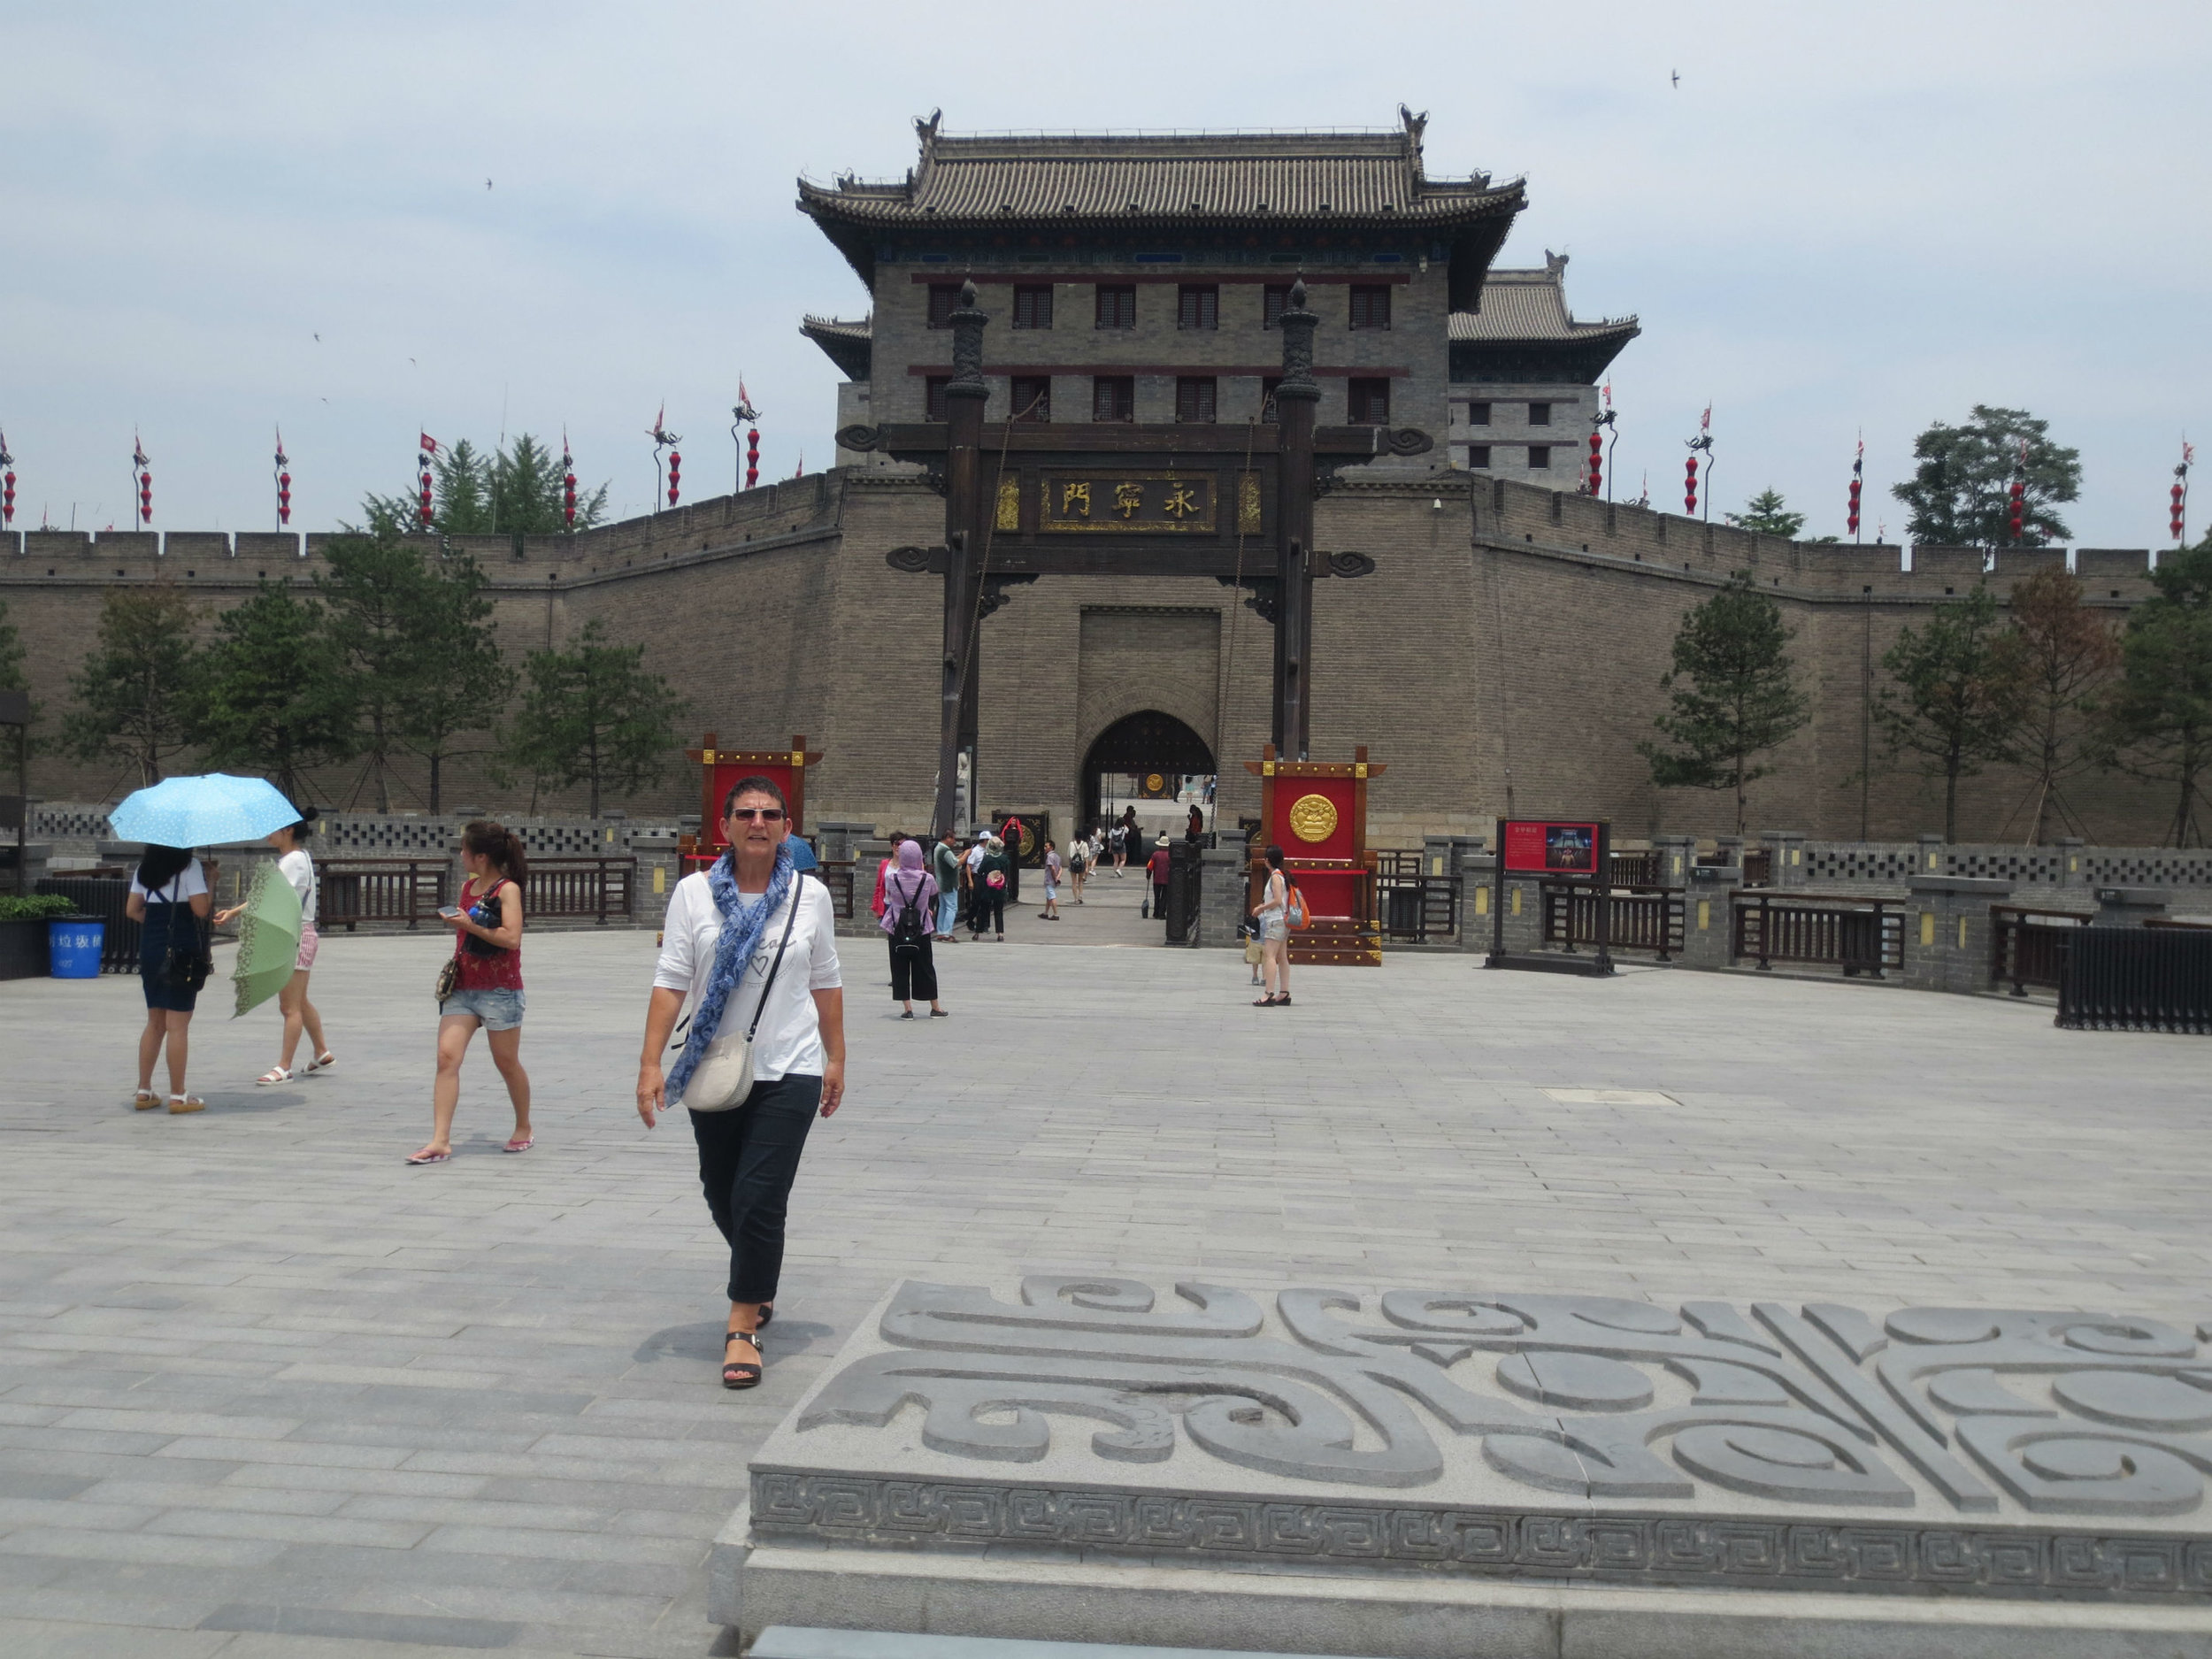 15th century city gate in Xi'an